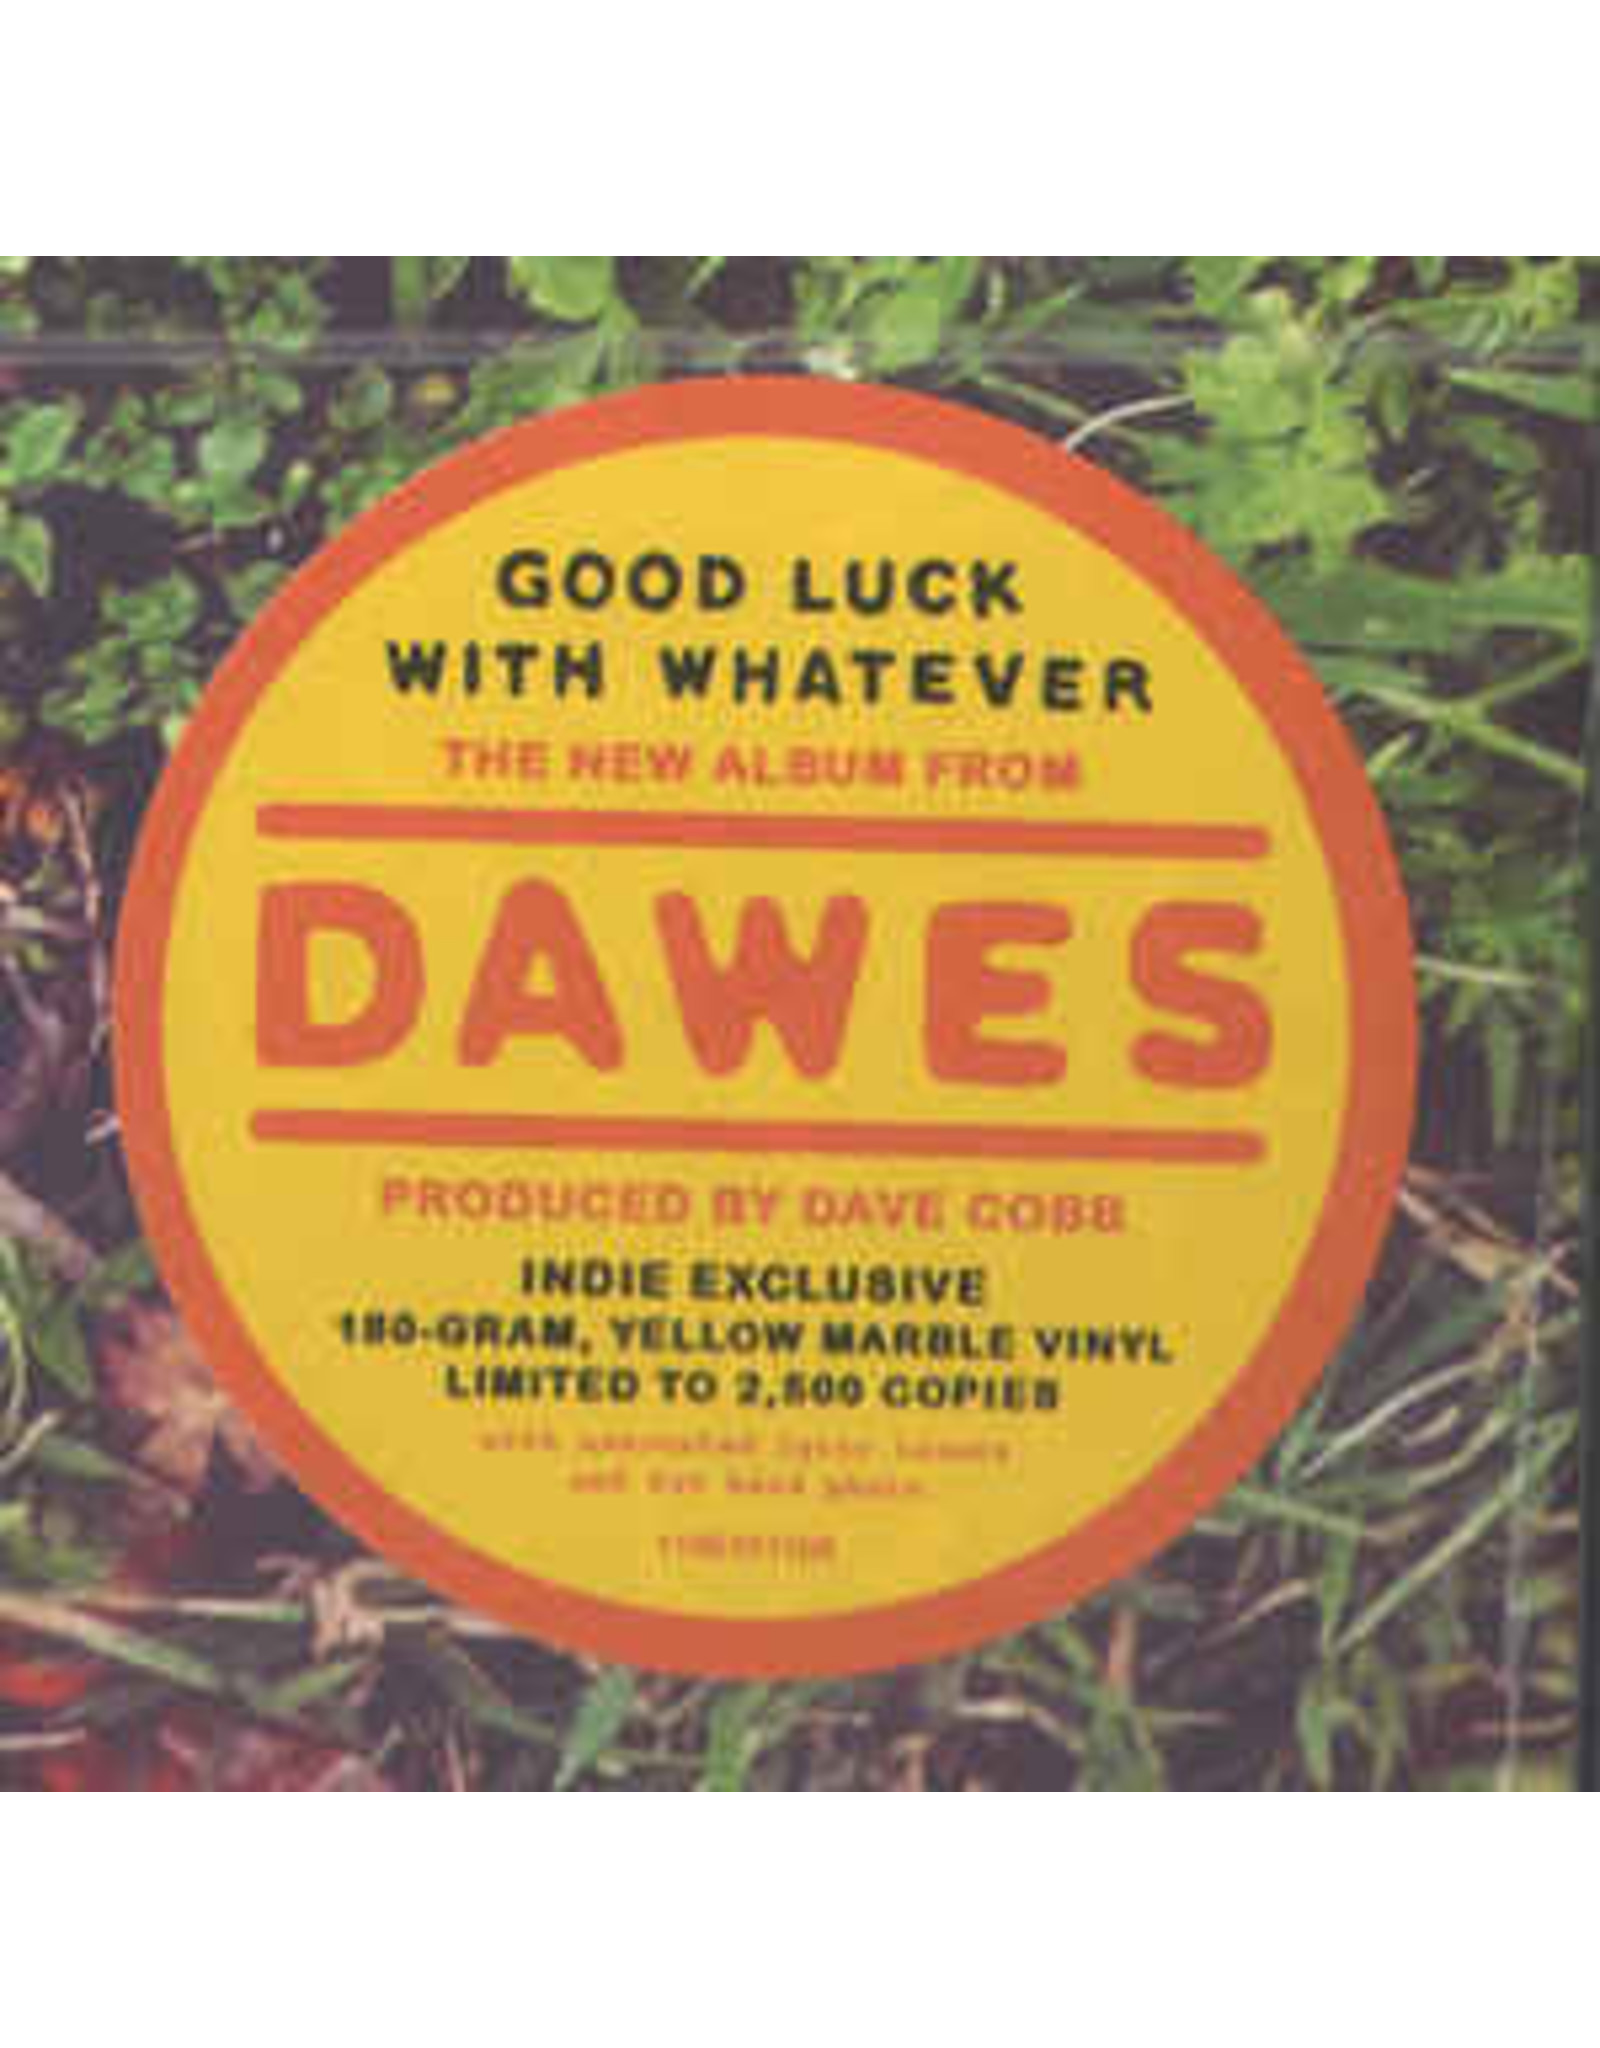 Dawes- Goodluck With Whatever LP